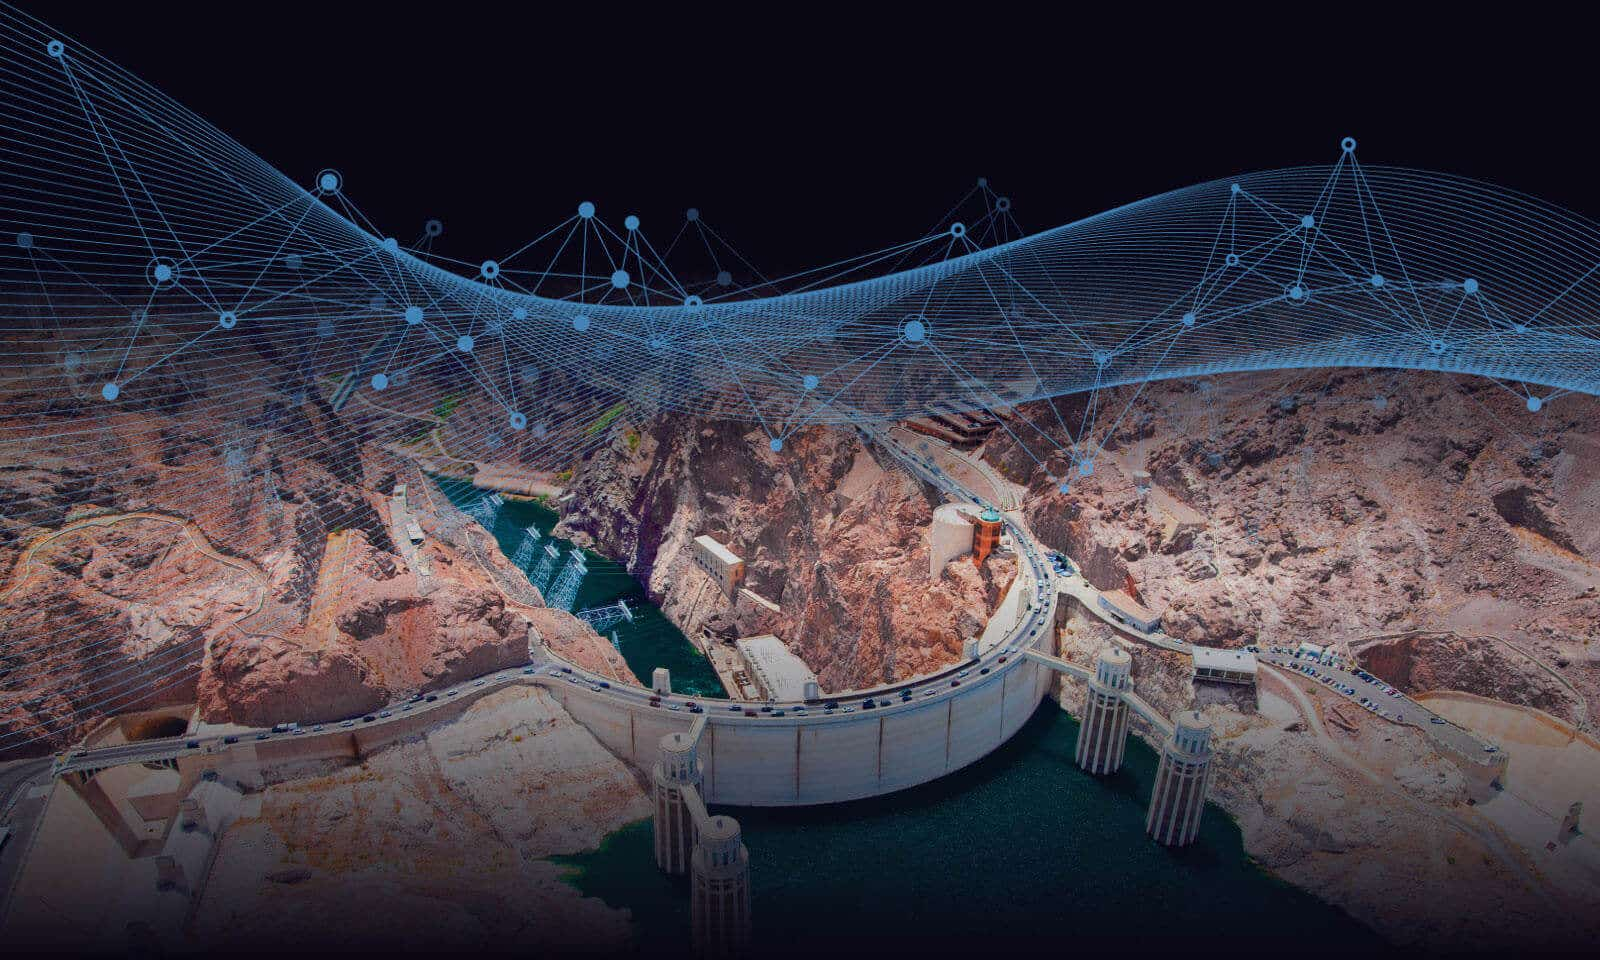 Hoover dam with futuristic lines overlaid